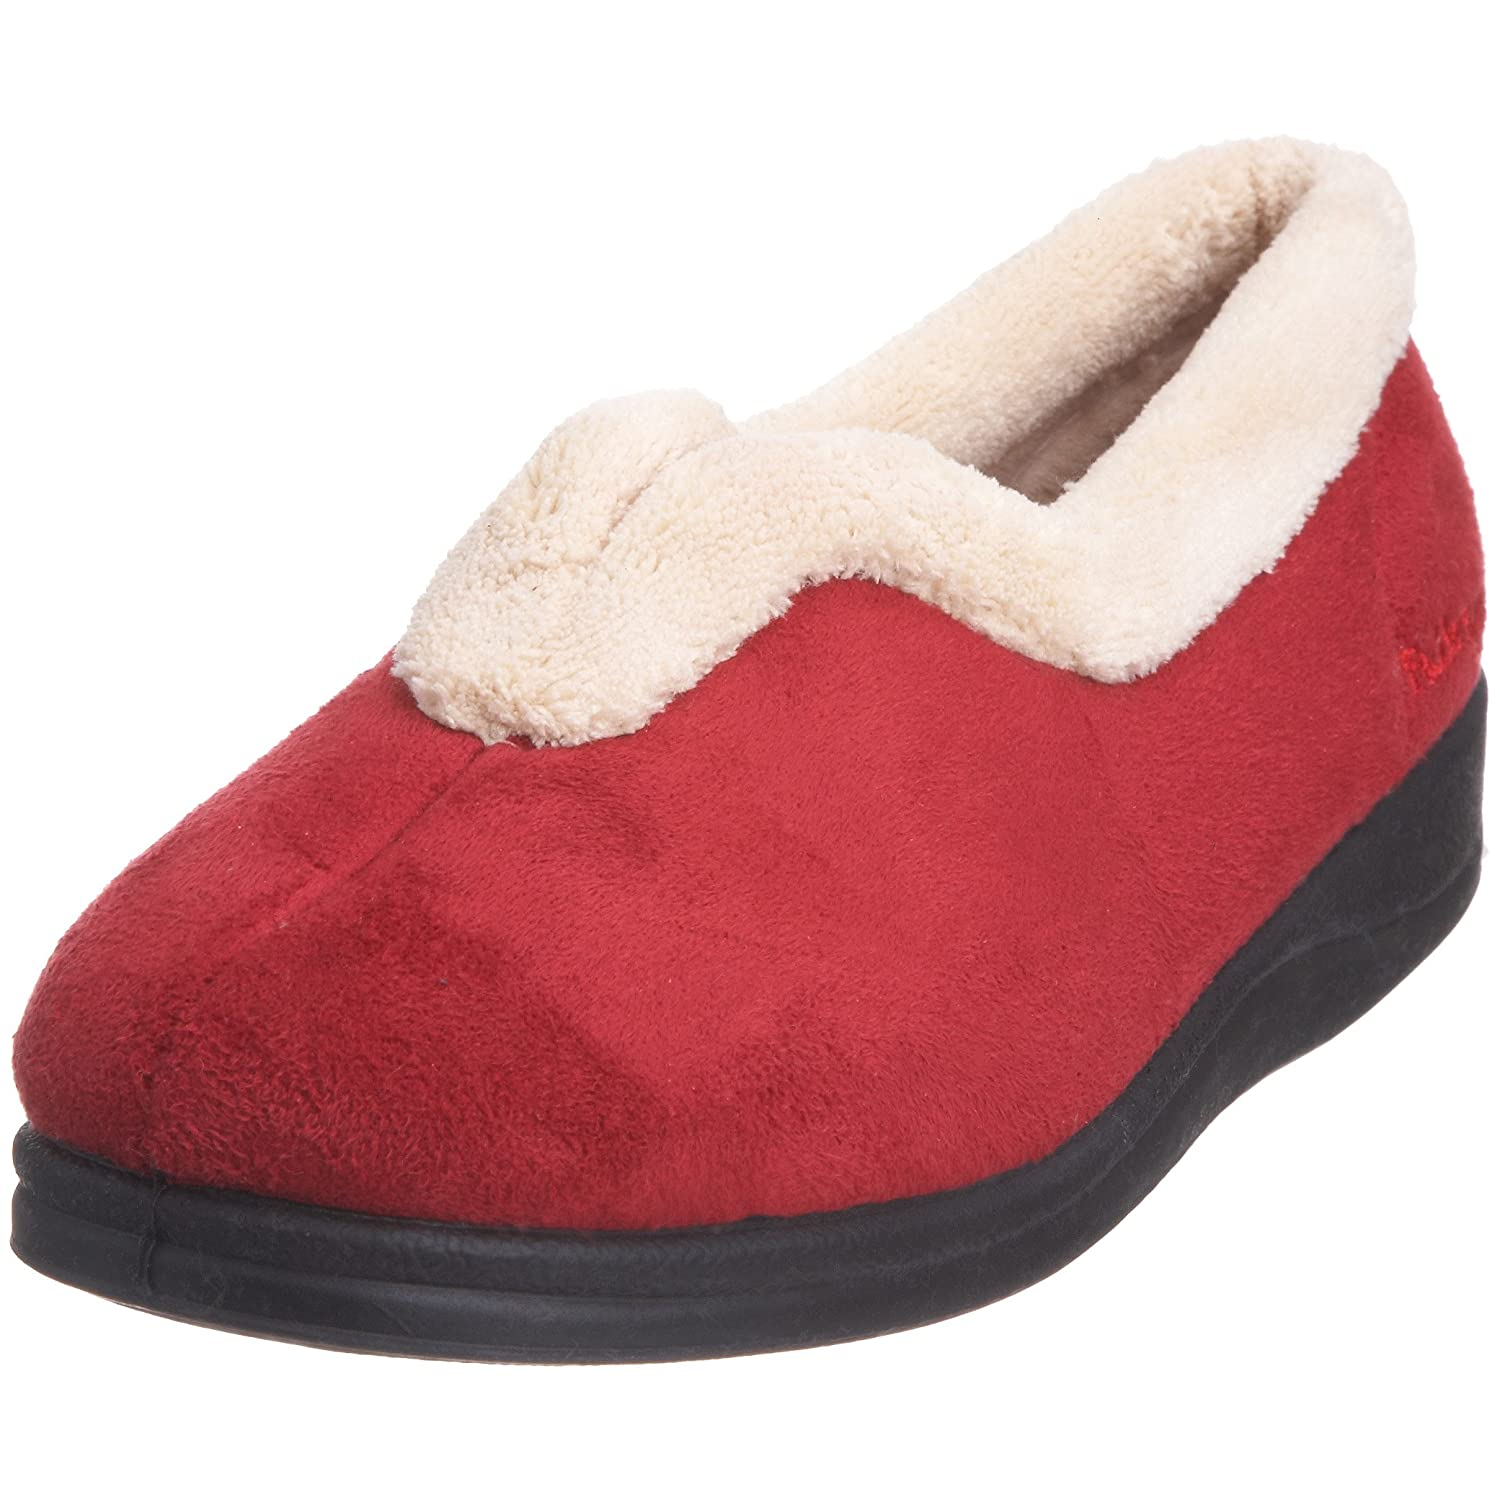 Padders Teal B06XH2WWPY Fleece And Fur Lined Carmen, Chaussons femme Fleece (Rouge-v.7) Rouge (Rouge-v.7) 80ed6b8 - boatplans.space